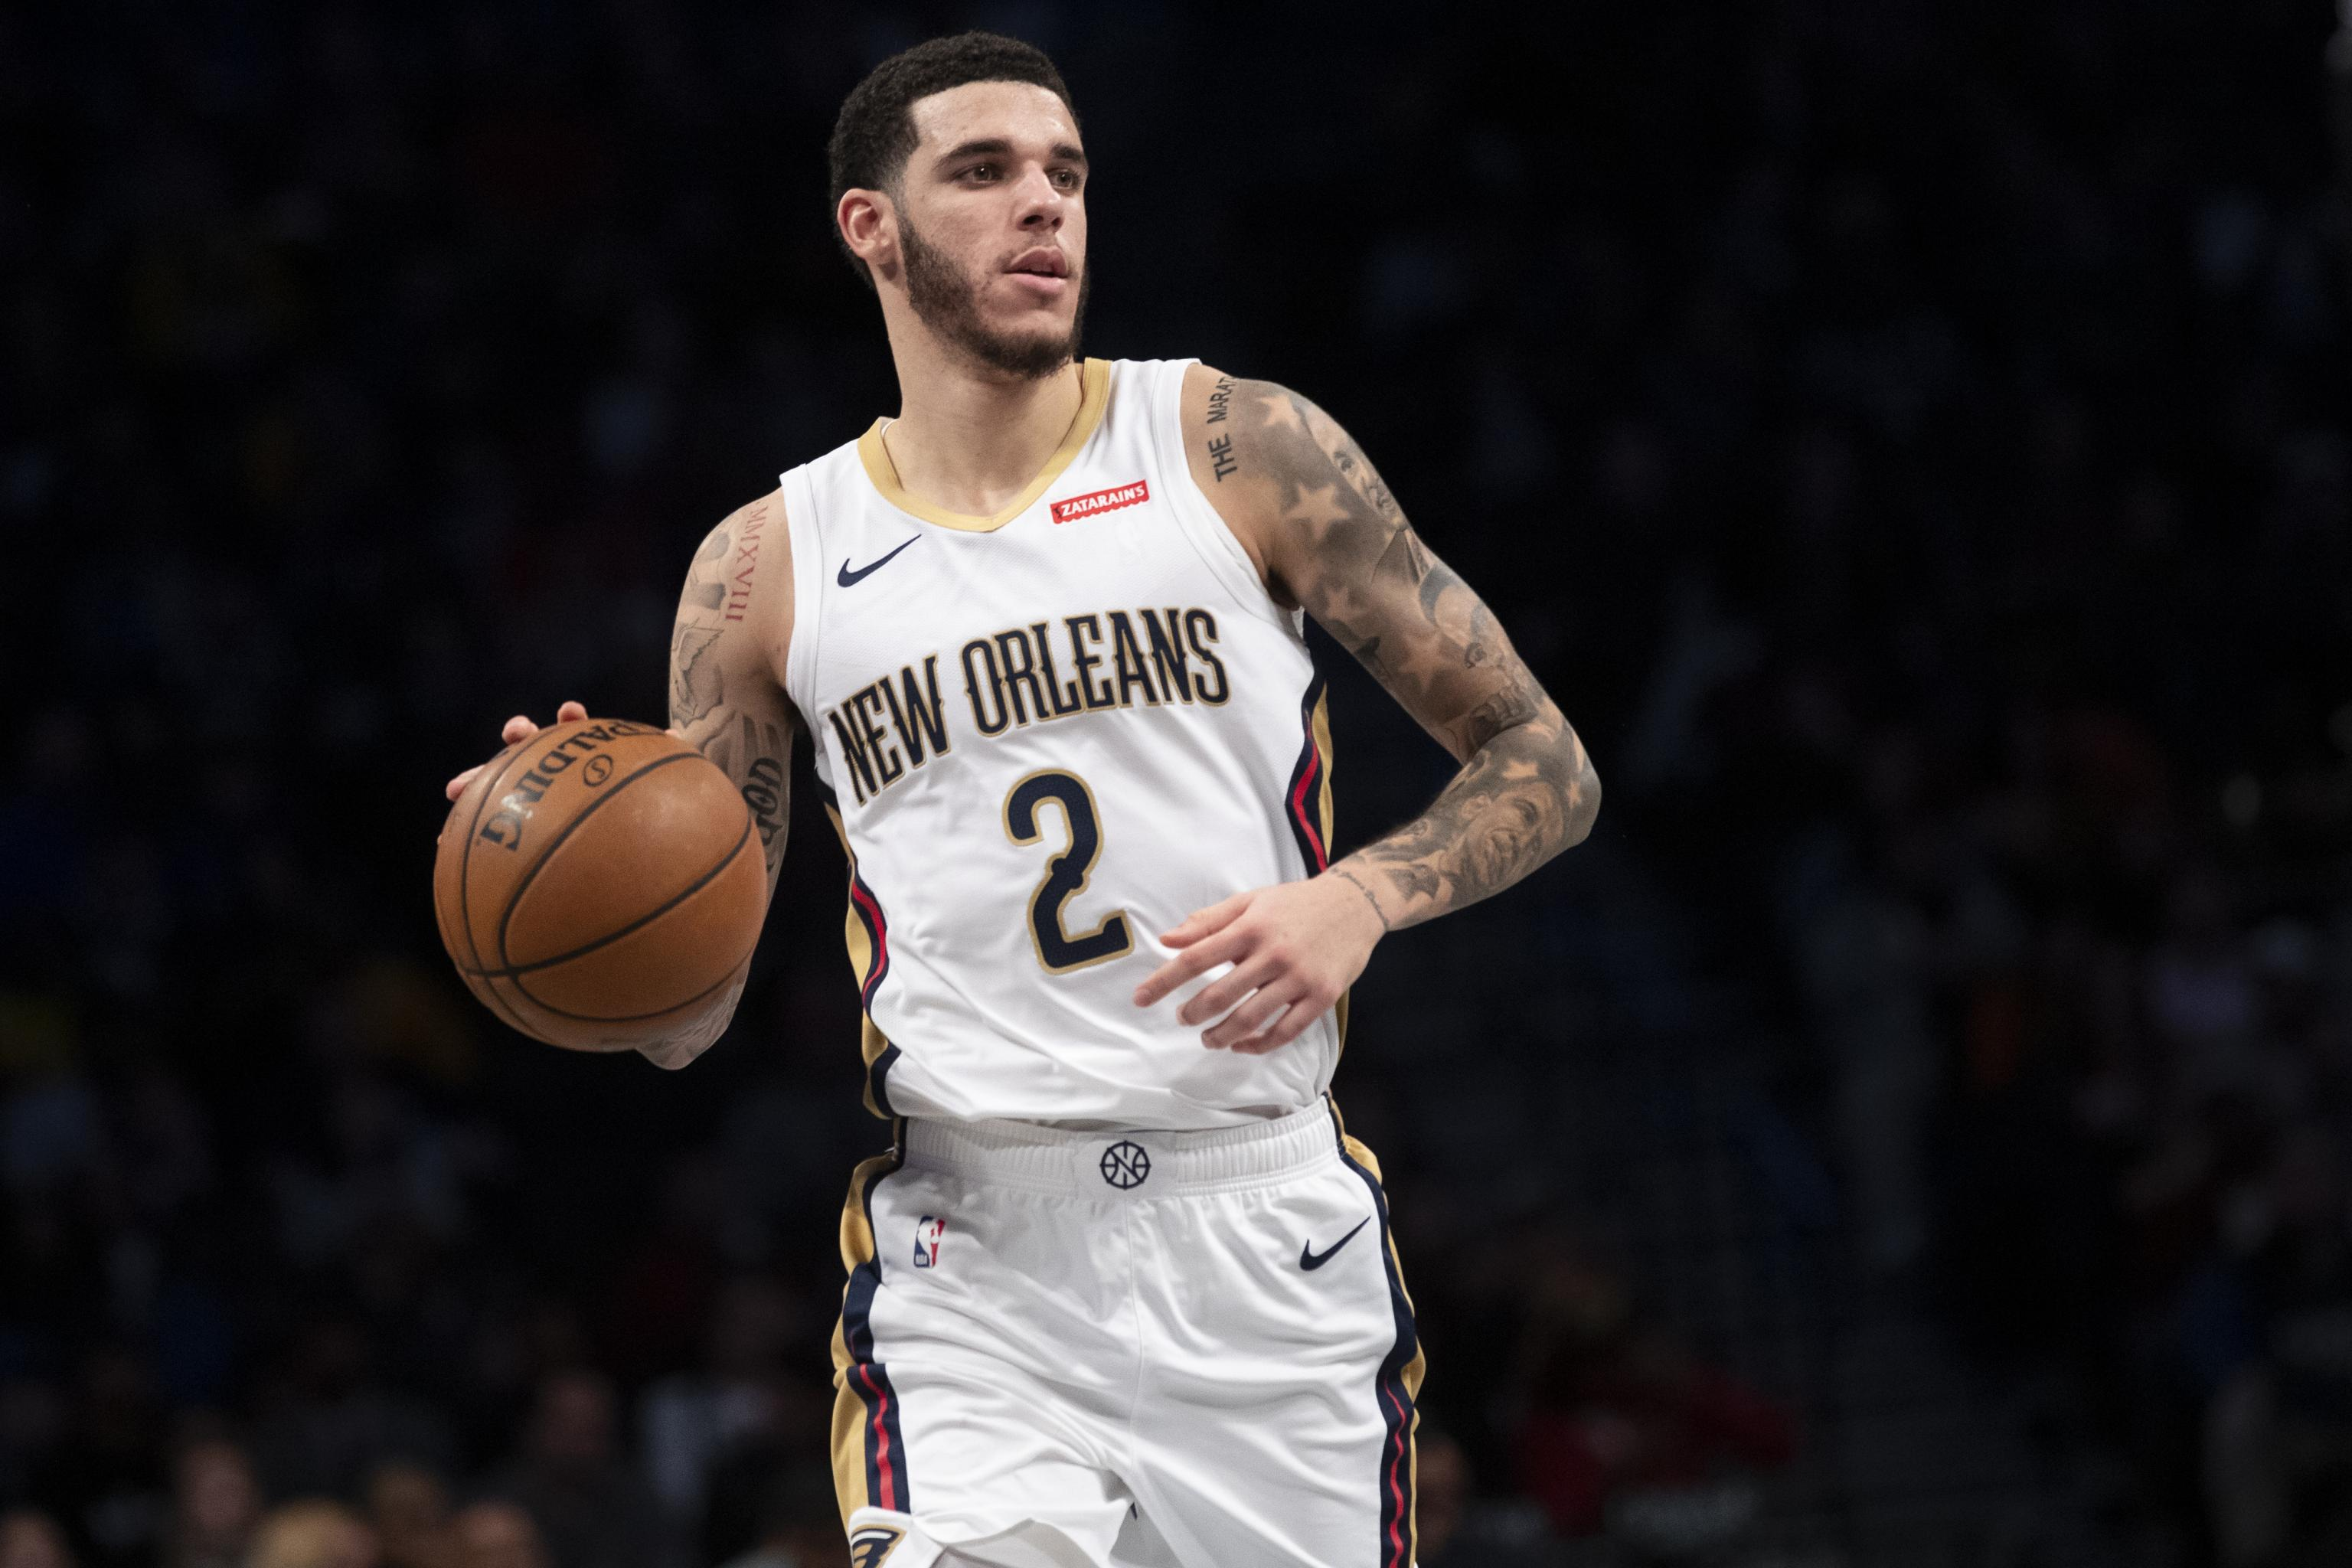 Pelicans Lonzo Ball Won T Play Vs Hornets Because Of Right Adductor Injury Bleacher Report Latest News Videos And Highlights